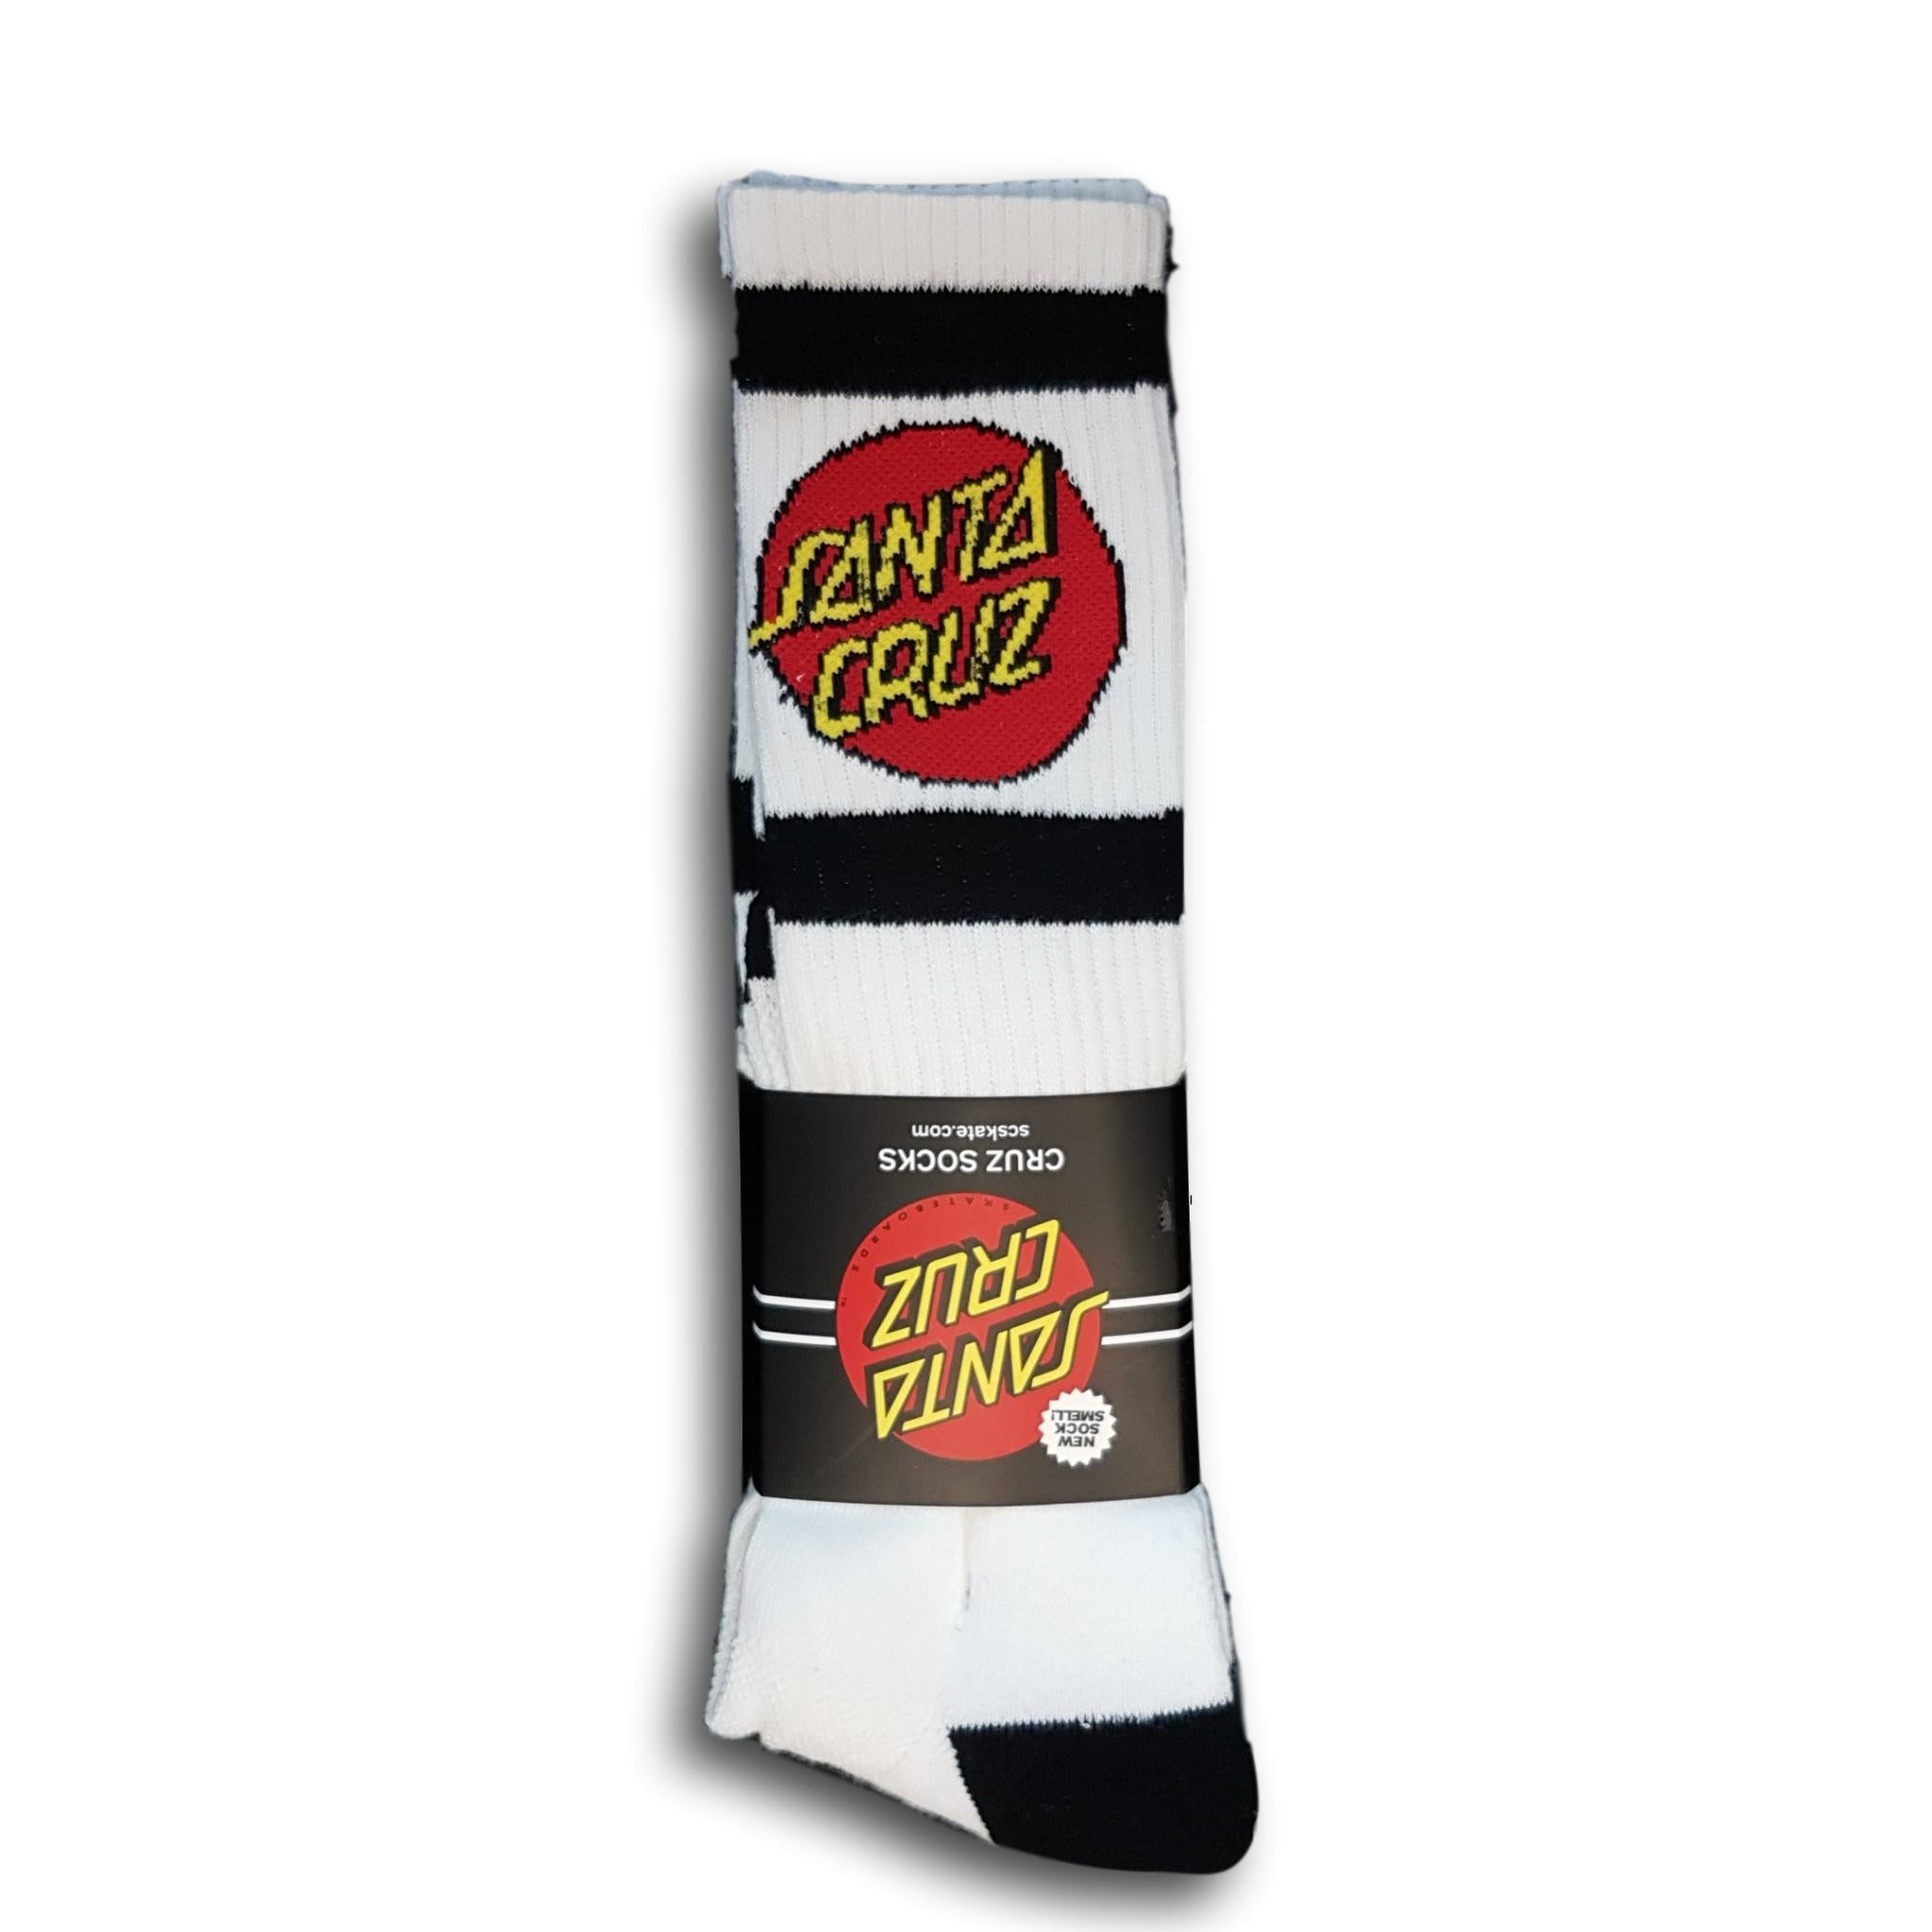 Santa Cruz SC Strip Tall Socks (2 pack) White/Black